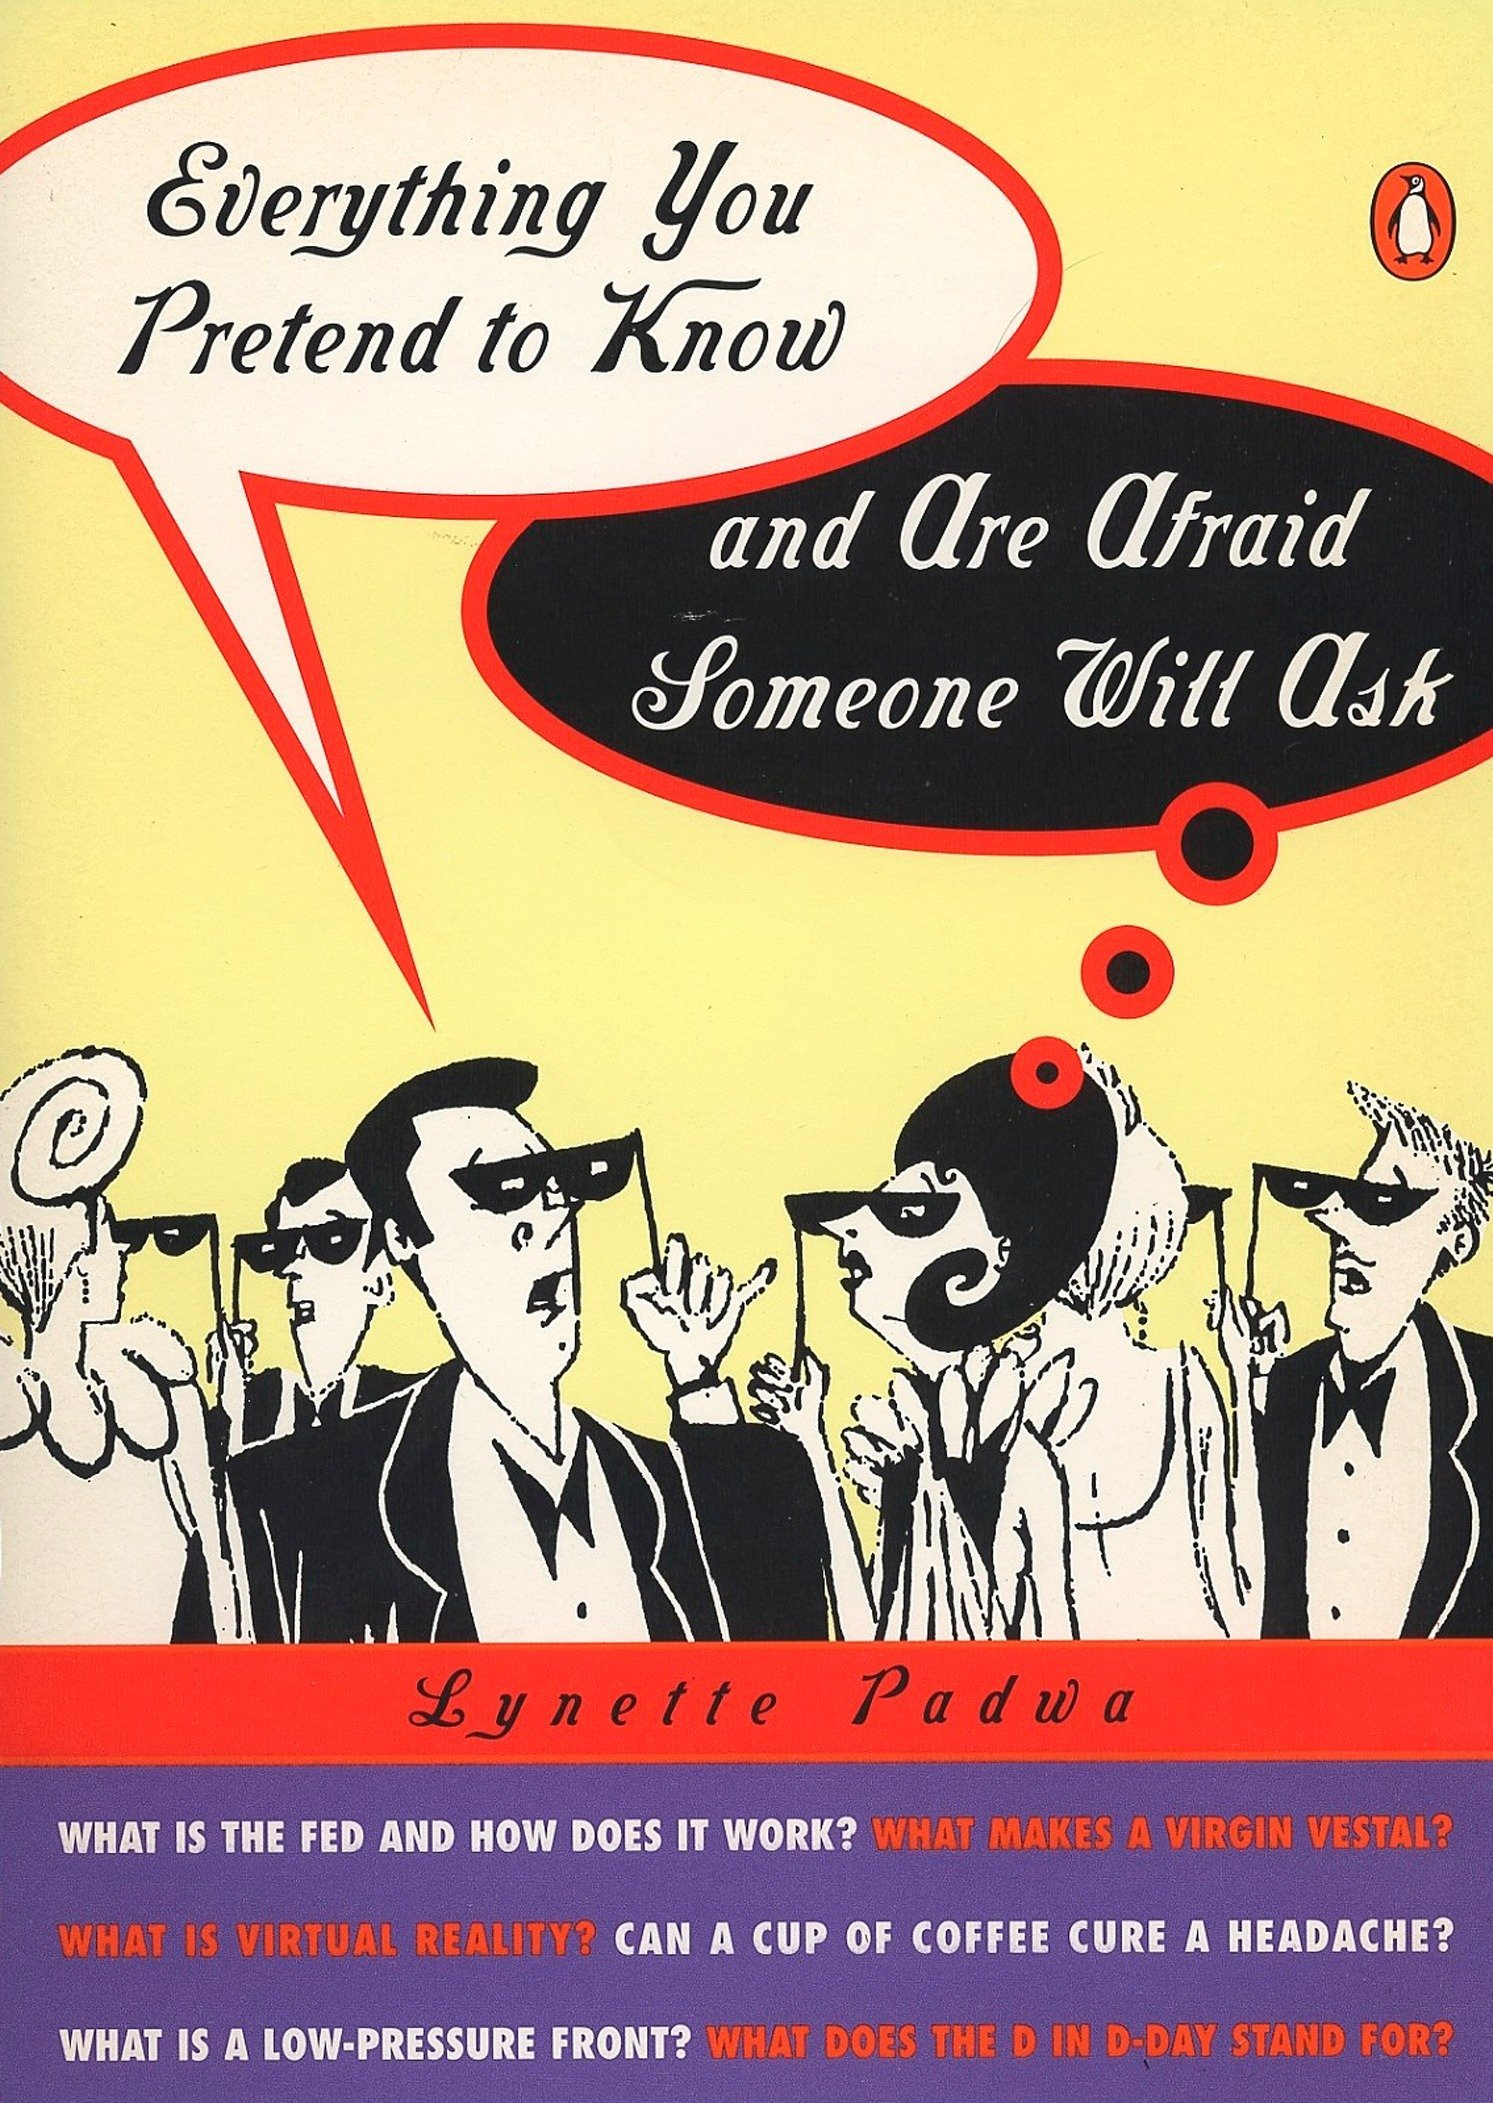 Everything You Pretend to Know and Are Afraid Someone Will Ask by Penguin Books